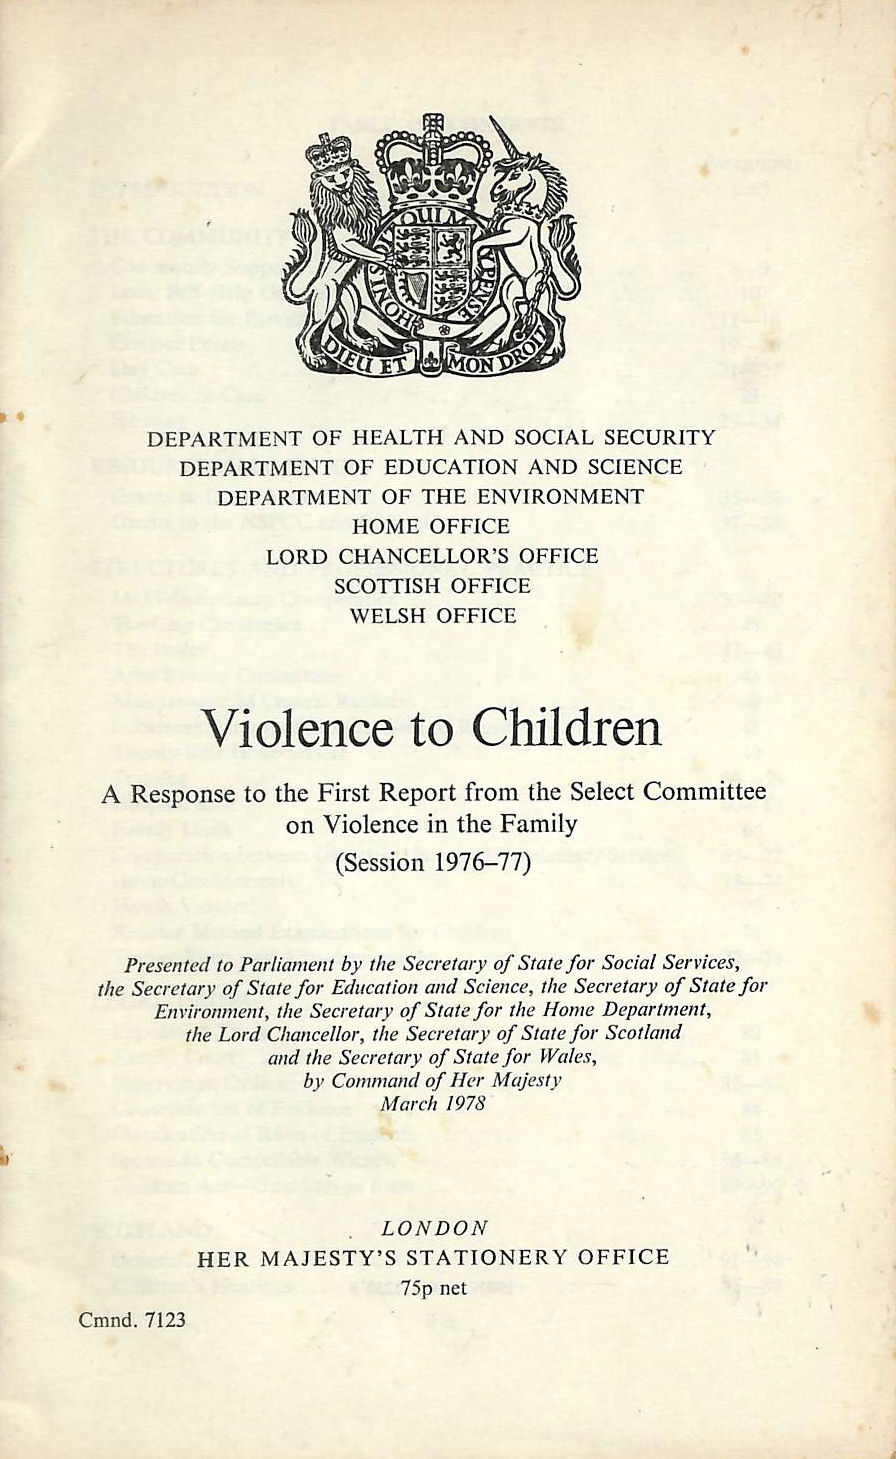 Image for Violence to children, a response to the first report from the Select Committee on Violence in the Family (session 1976-77) (Cmnd.7123)